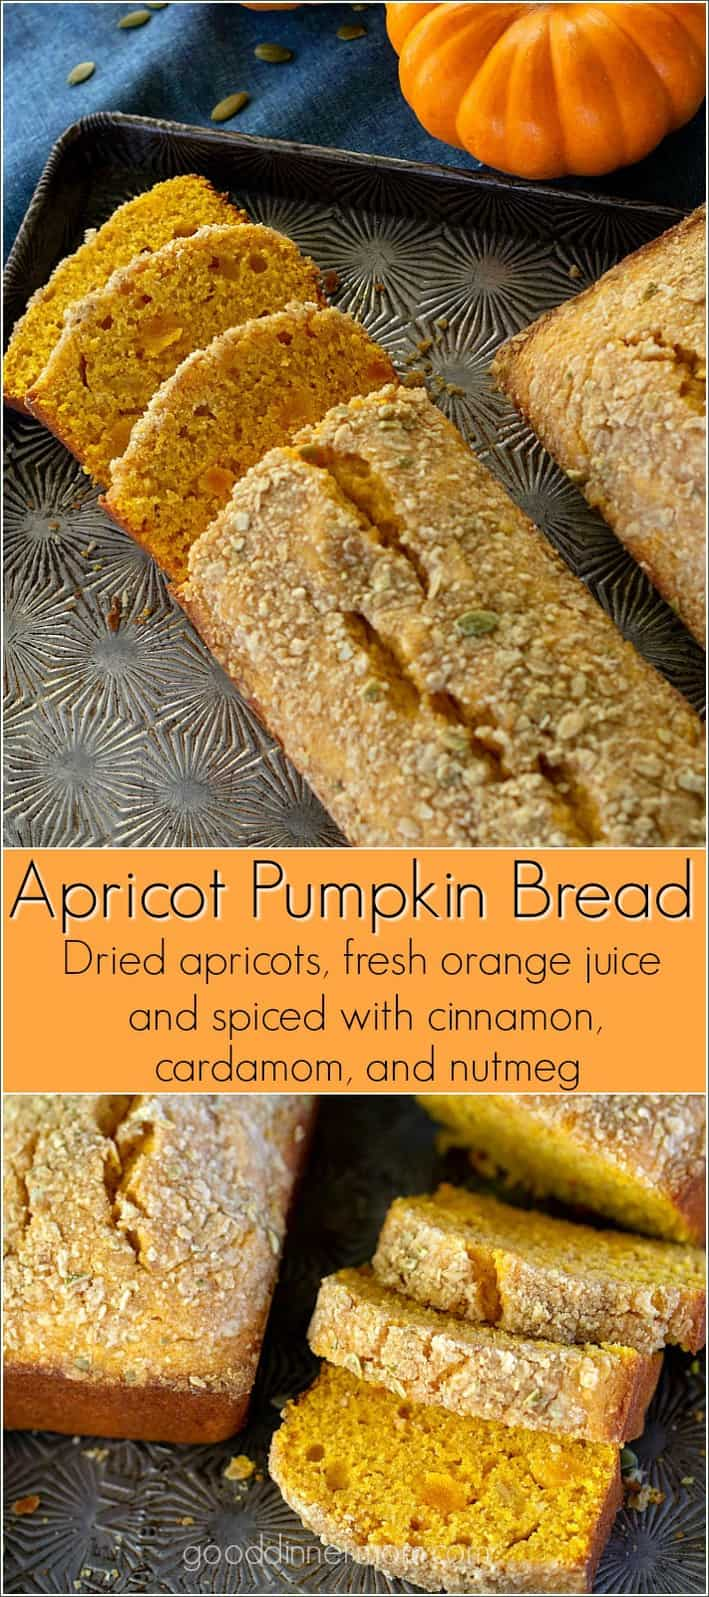 Moist, delicious, fresh, Apricot Pumpkin Bread is like no other pumpkin bread recipe you've had. #pumpkin #quickbread